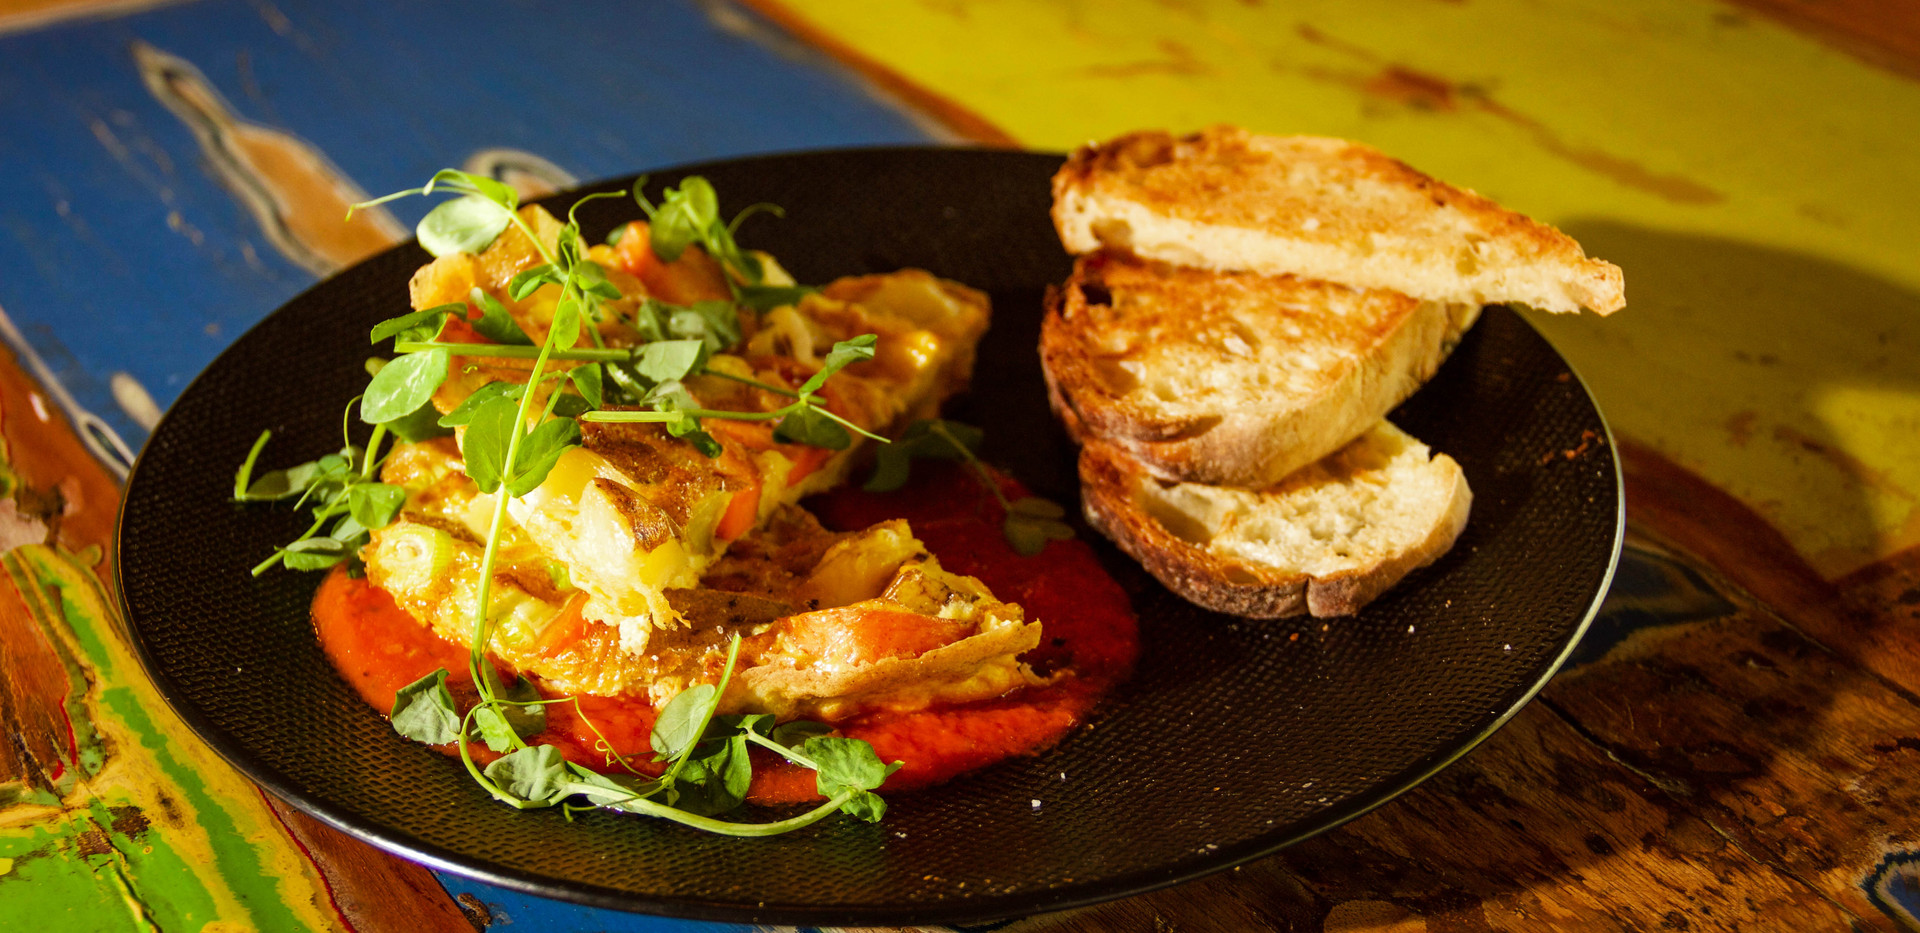 Breakfast: Vegetable Omelette with peashoots and sourdough bread